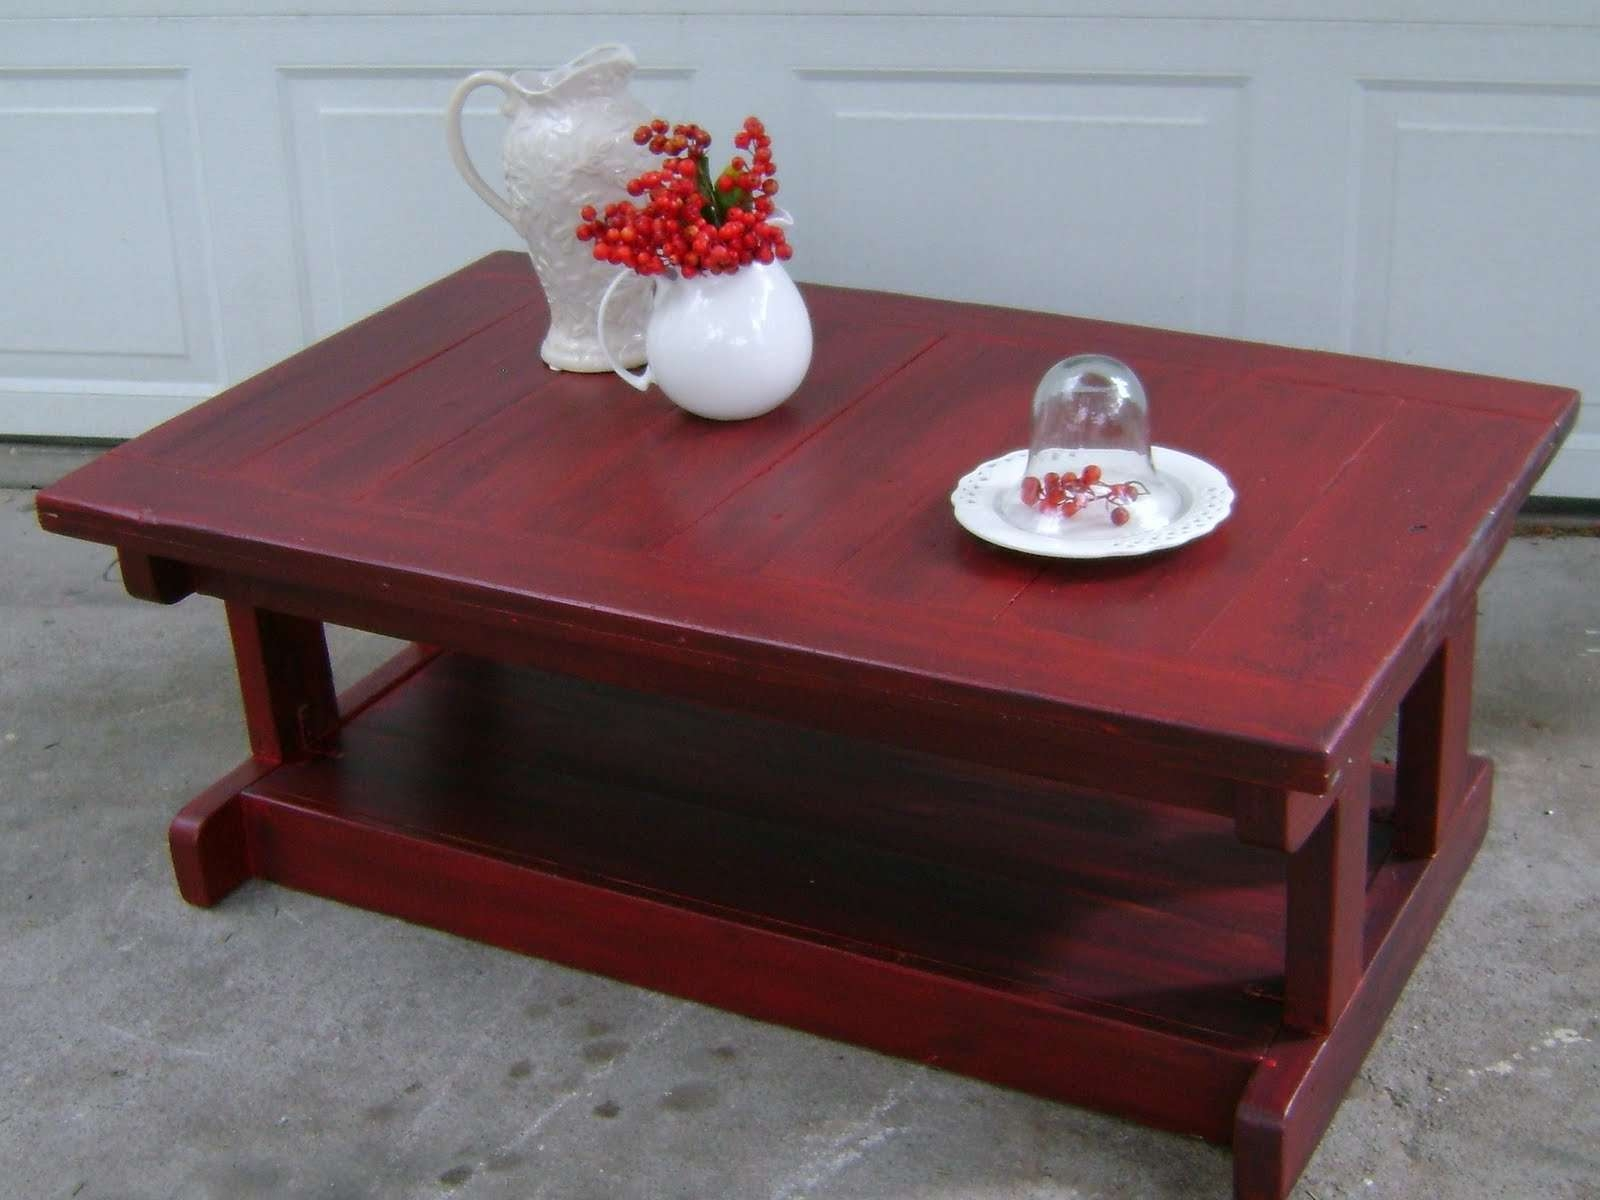 Well Liked Red Coffee Tables Within Red Coffee Tables With Glass Material And Trunk As Storage (View 20 of 20)